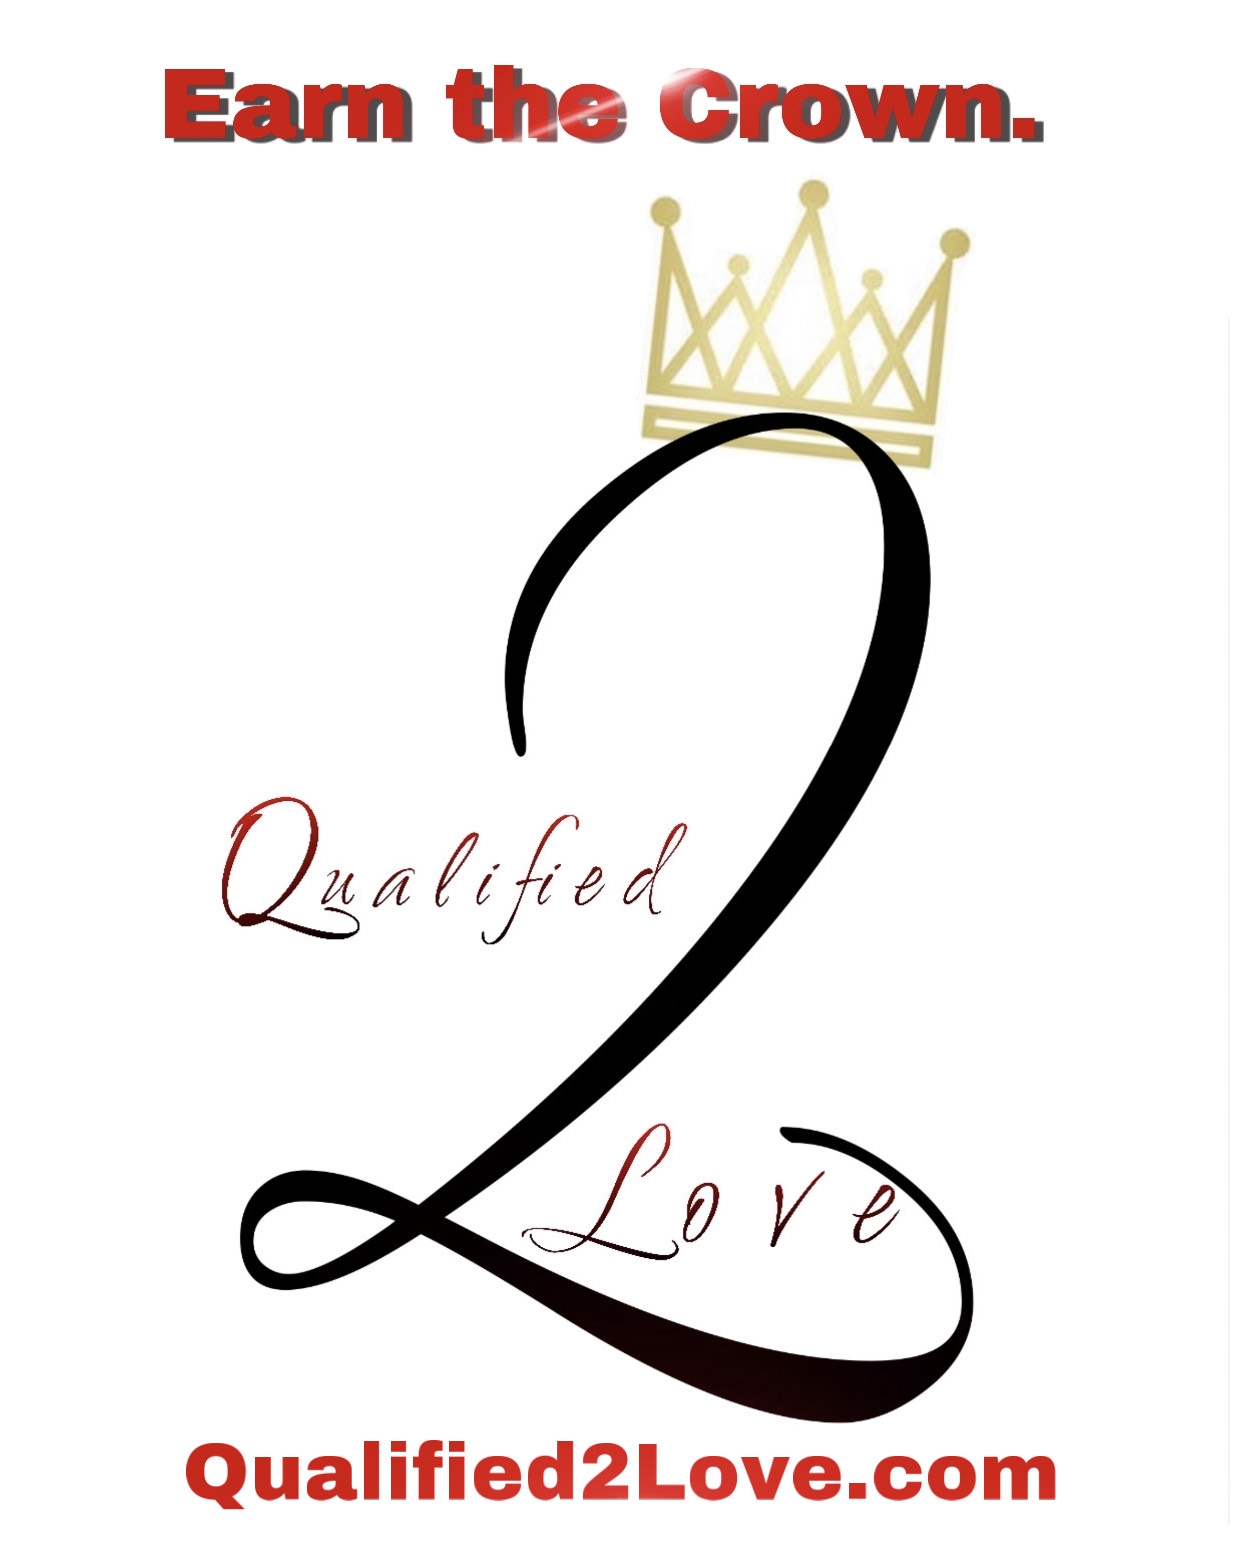 Qualified 2 Love